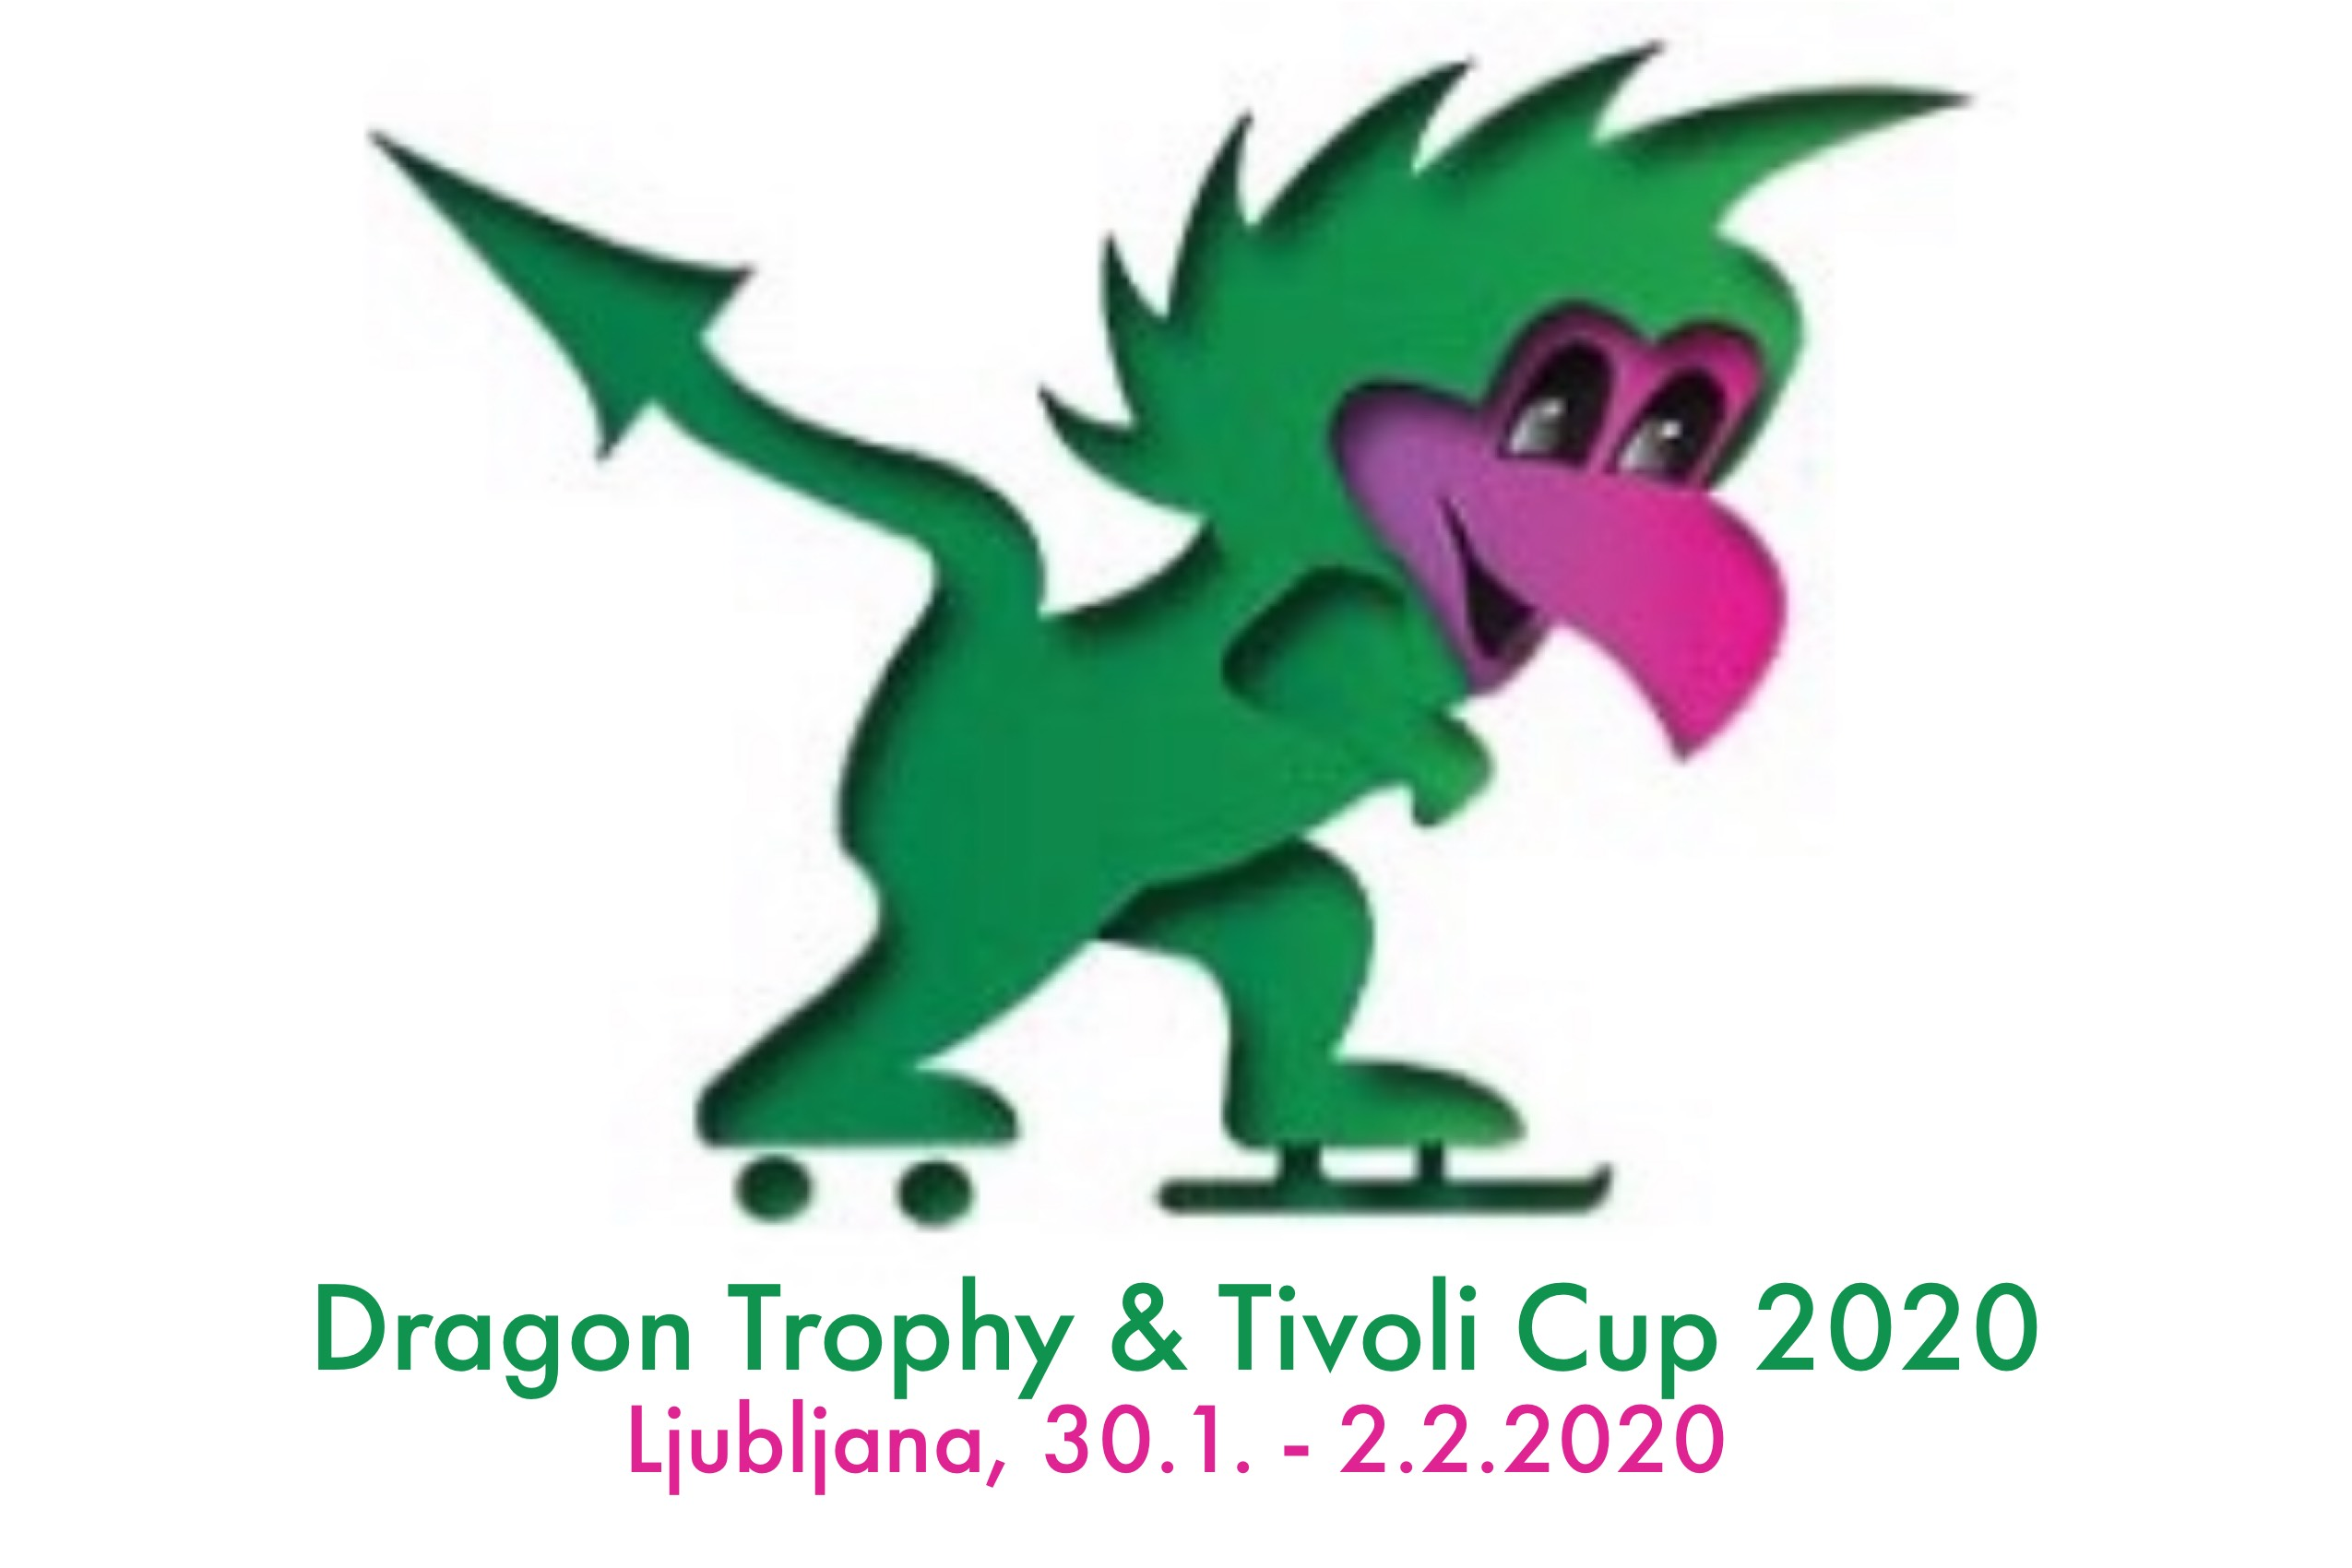 INTERNATIONAL FIGURE SKATING COMPETITIONS DRAGON TROPHY & TIVOLI CUP 2020